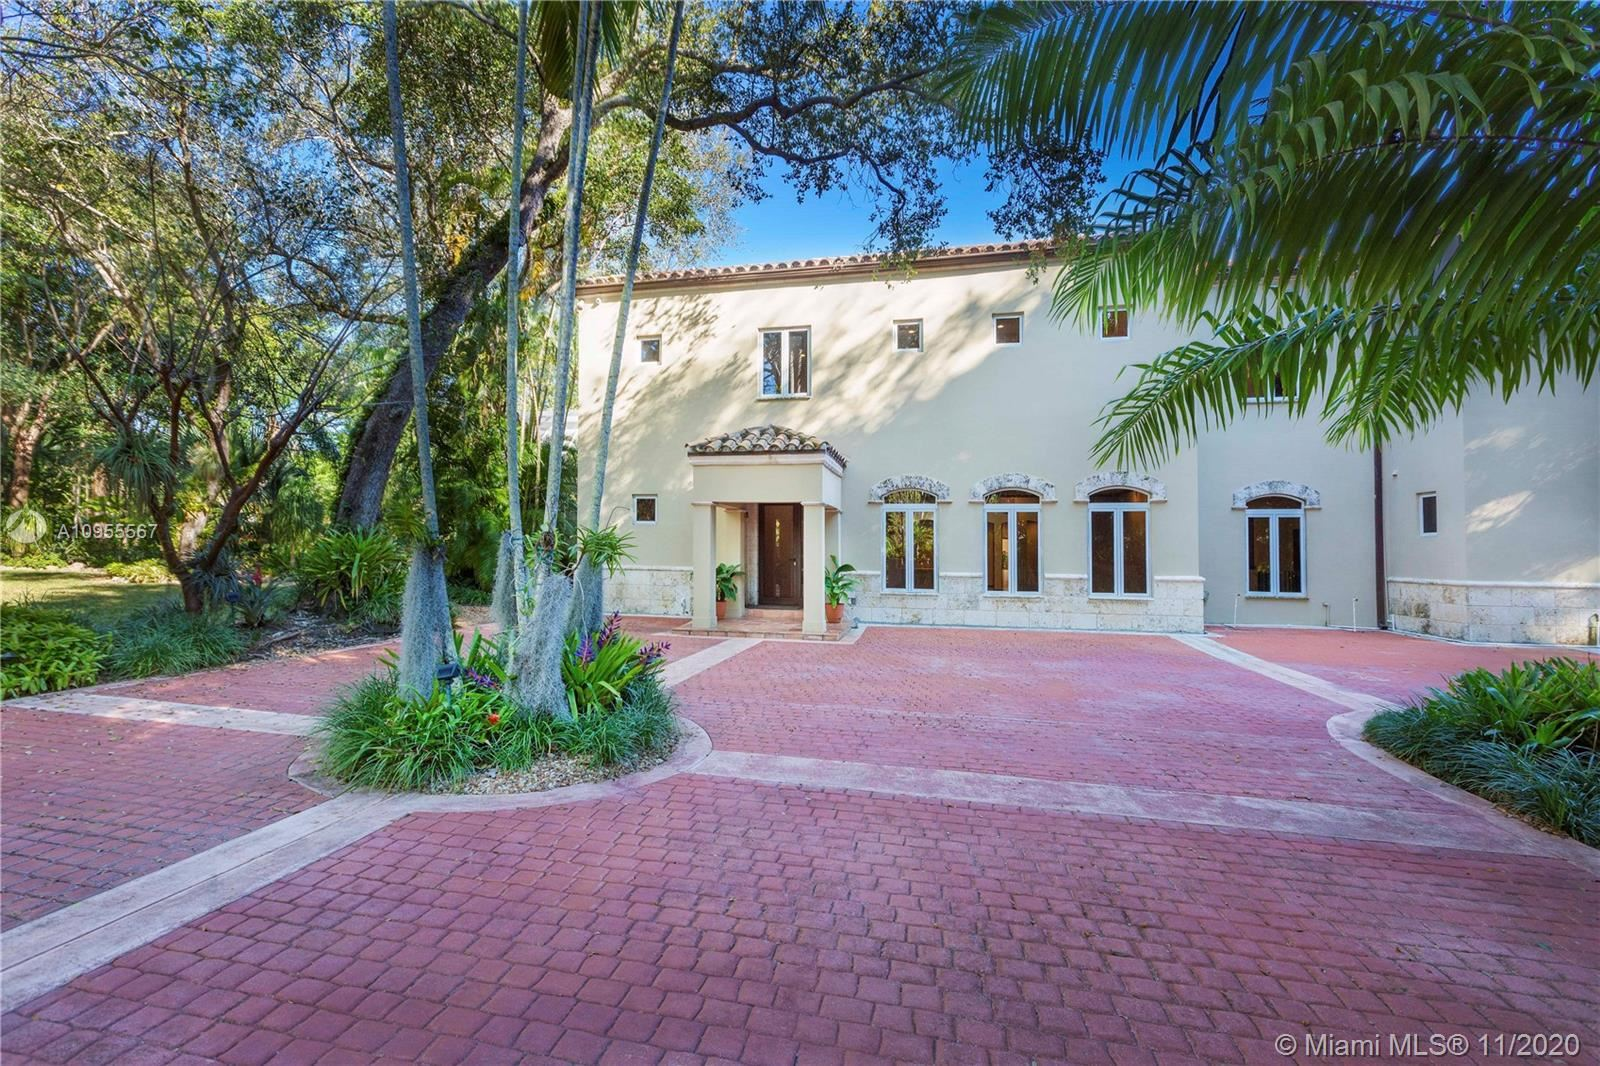 9400 Old Cutler Ln, Coral Gables, FL 33156 - #: A10955567